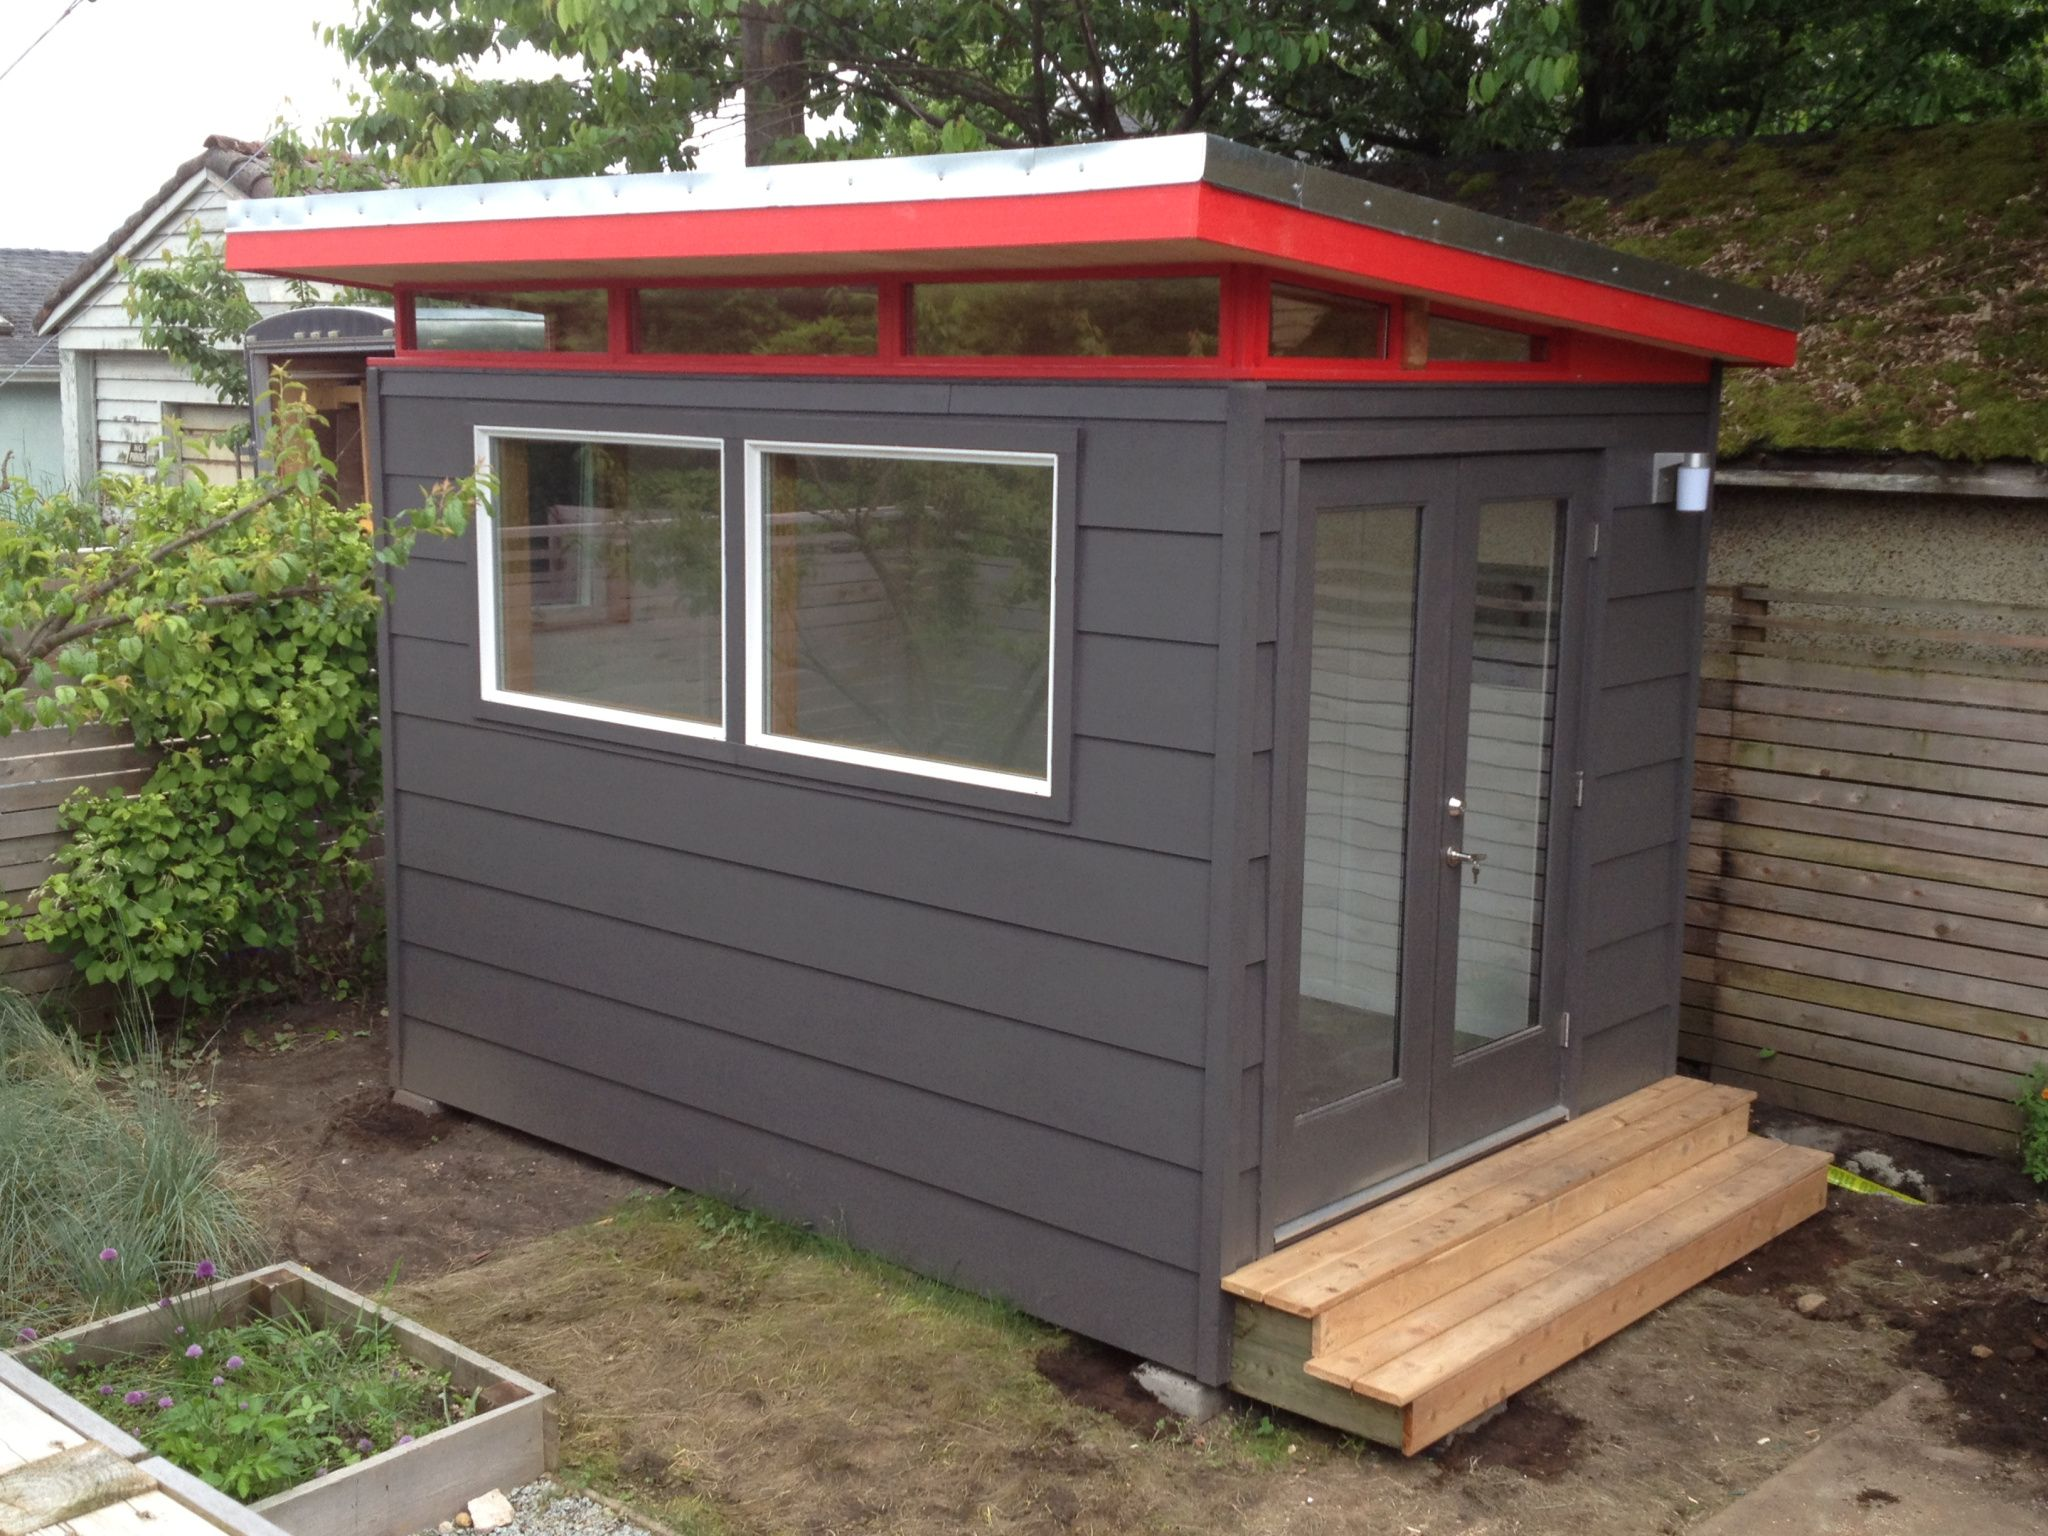 Metro Vancouver Modern Shed Special Westcoast Outbuildings Backyard Storage Sheds Shed Design Backyard Storage